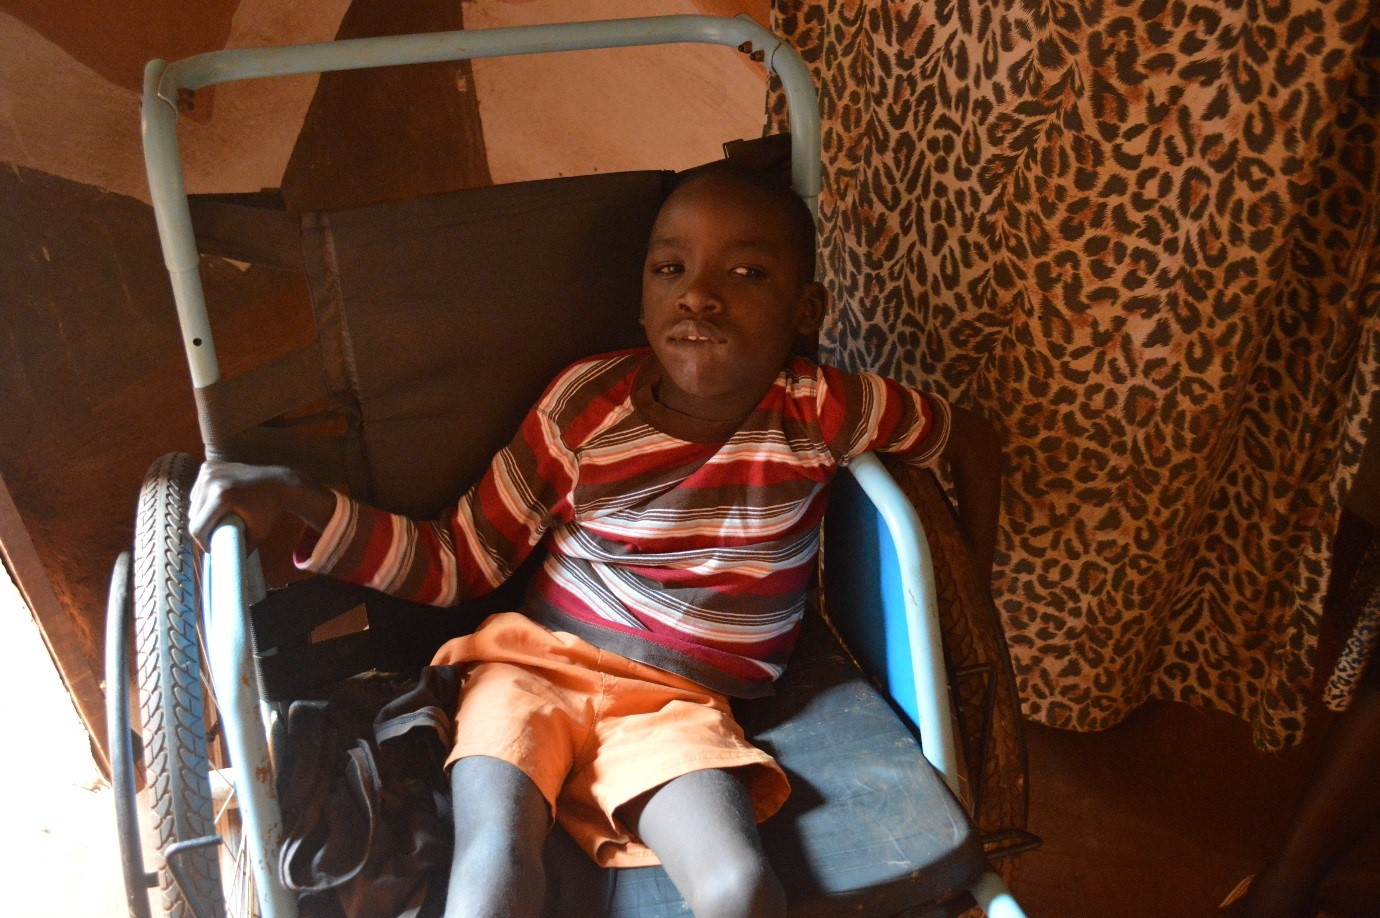 With funding from the Government of Finland and assistance from UNHCR, 9 year-old Gad now has access to a wheelchair which allows him to play with other children outside and feel included in society.